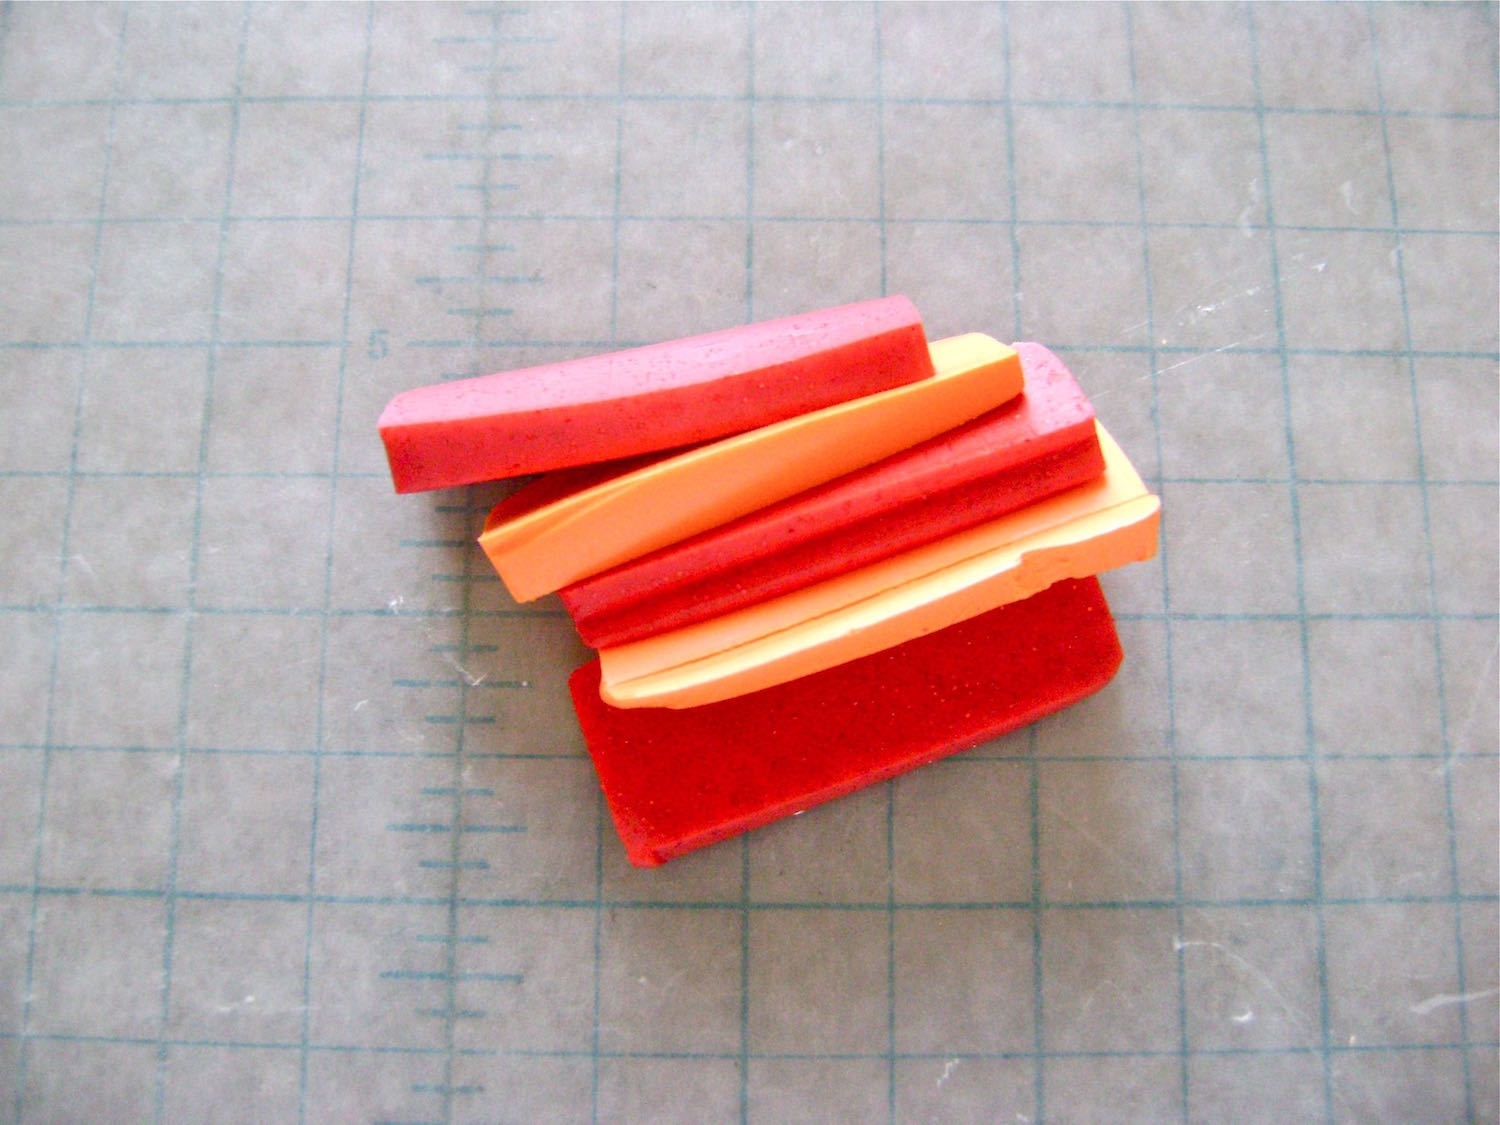 "step 1 - Cut the orange and pink clay into thin slices and condition.  Blend them together with a roller or pasta machine to create the watermelon color.  Cut the clay into a 1.25"" x 7"" strip, or the size that will fit your round cookie cutter.  Wrap heavy-duty foil around the cutter followed by the clay strip.  Adjust the size if necessary.  Blend the ends together to create a ring."